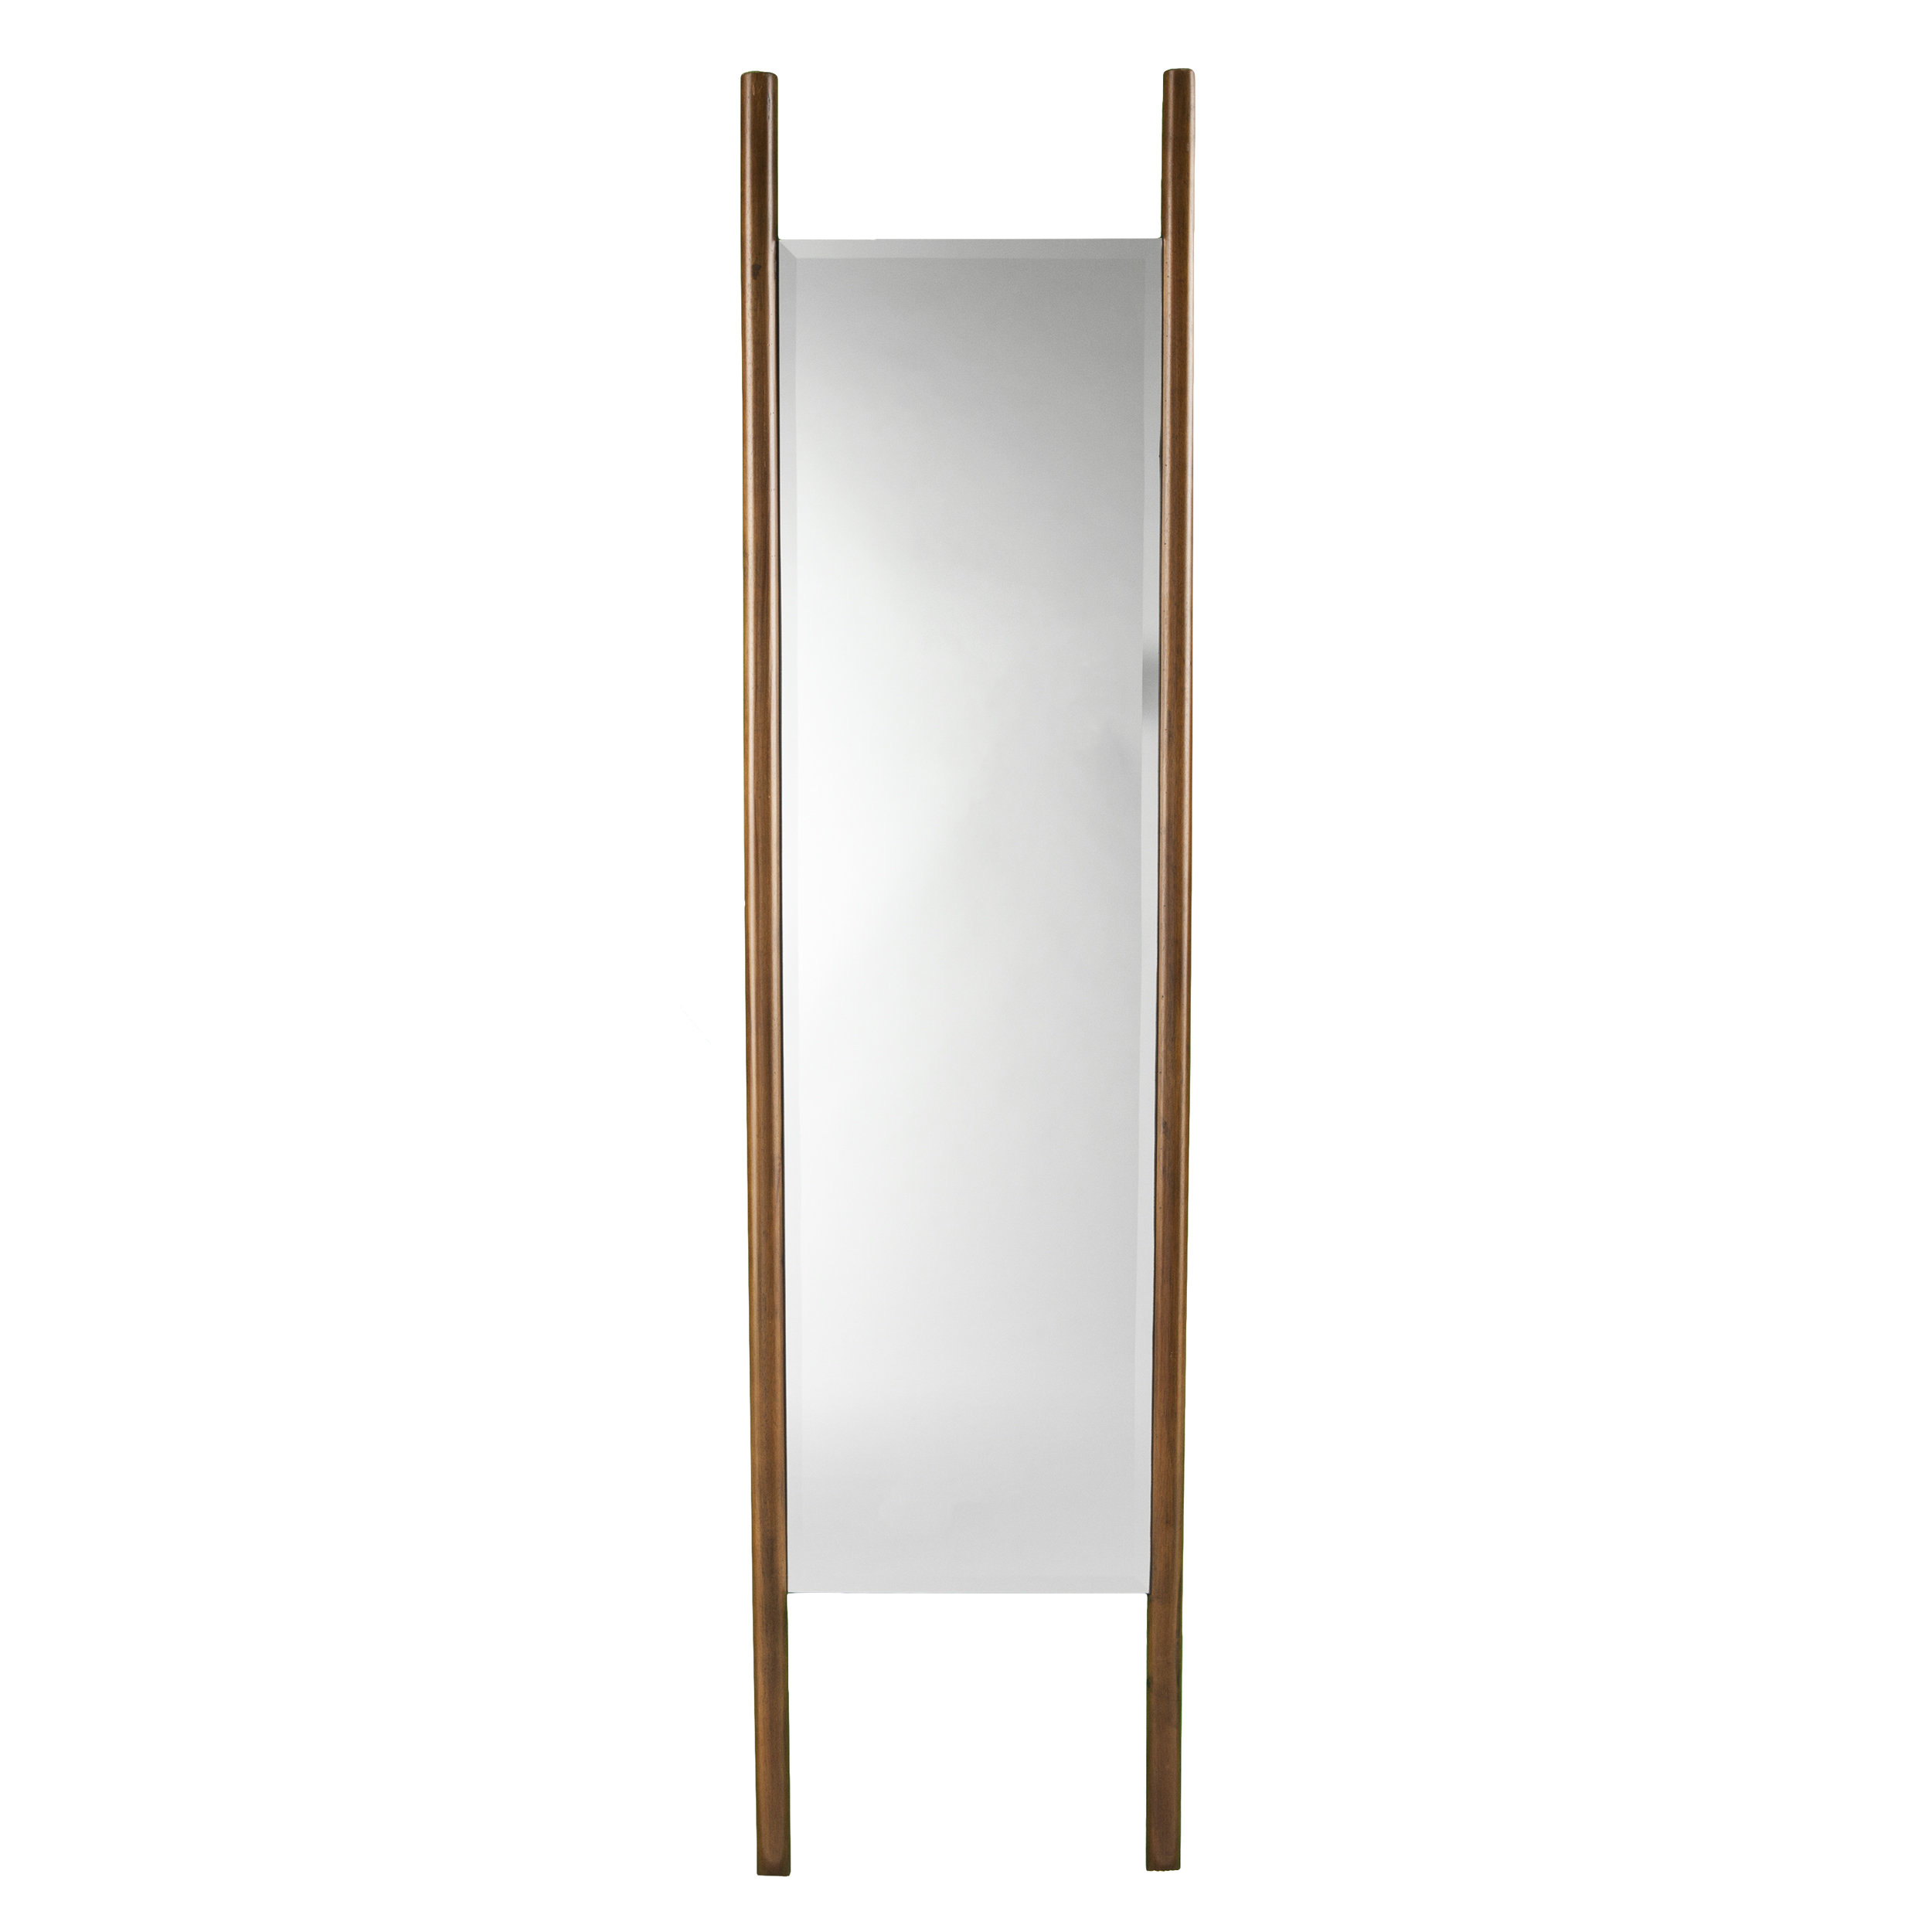 Cressida Full Length Mirror & Reviews | Allmodern With Dalessio Wide Tall Full Length Mirrors (View 18 of 30)